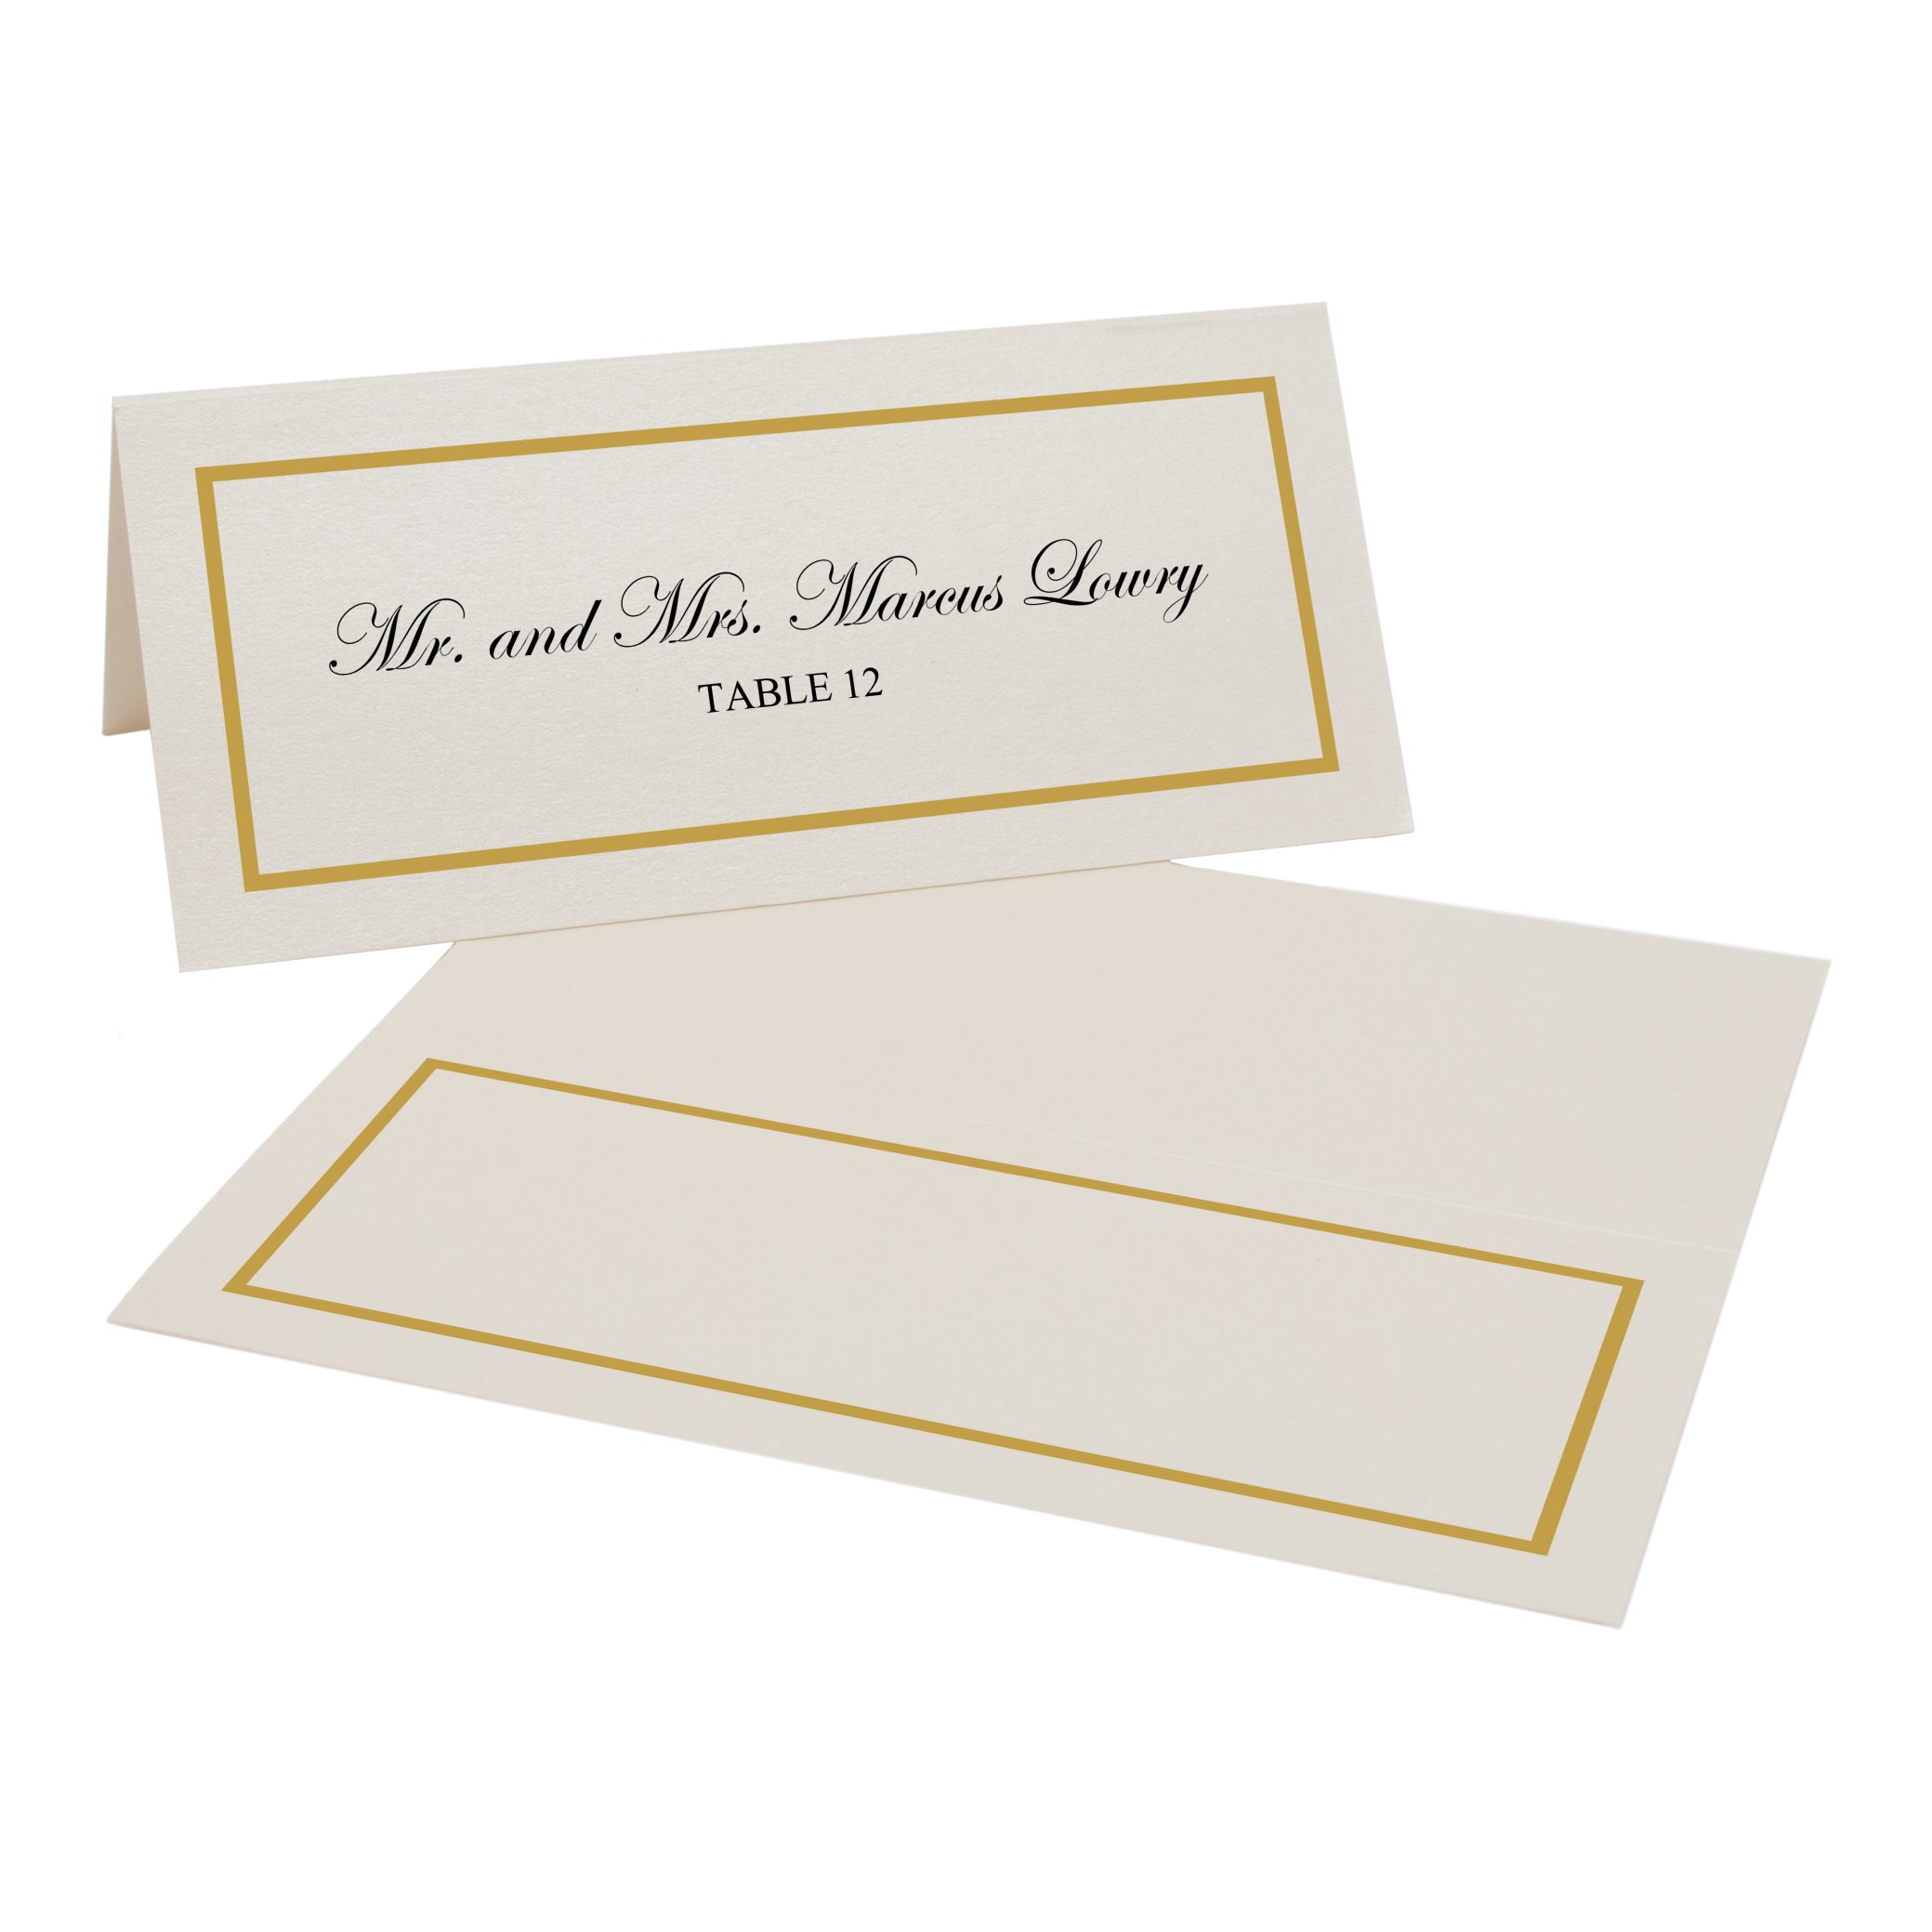 Single Line Border Easy Print Place Cards, Champagne, Gold, Set of 300 (75 Sheets) by Documents and Designs